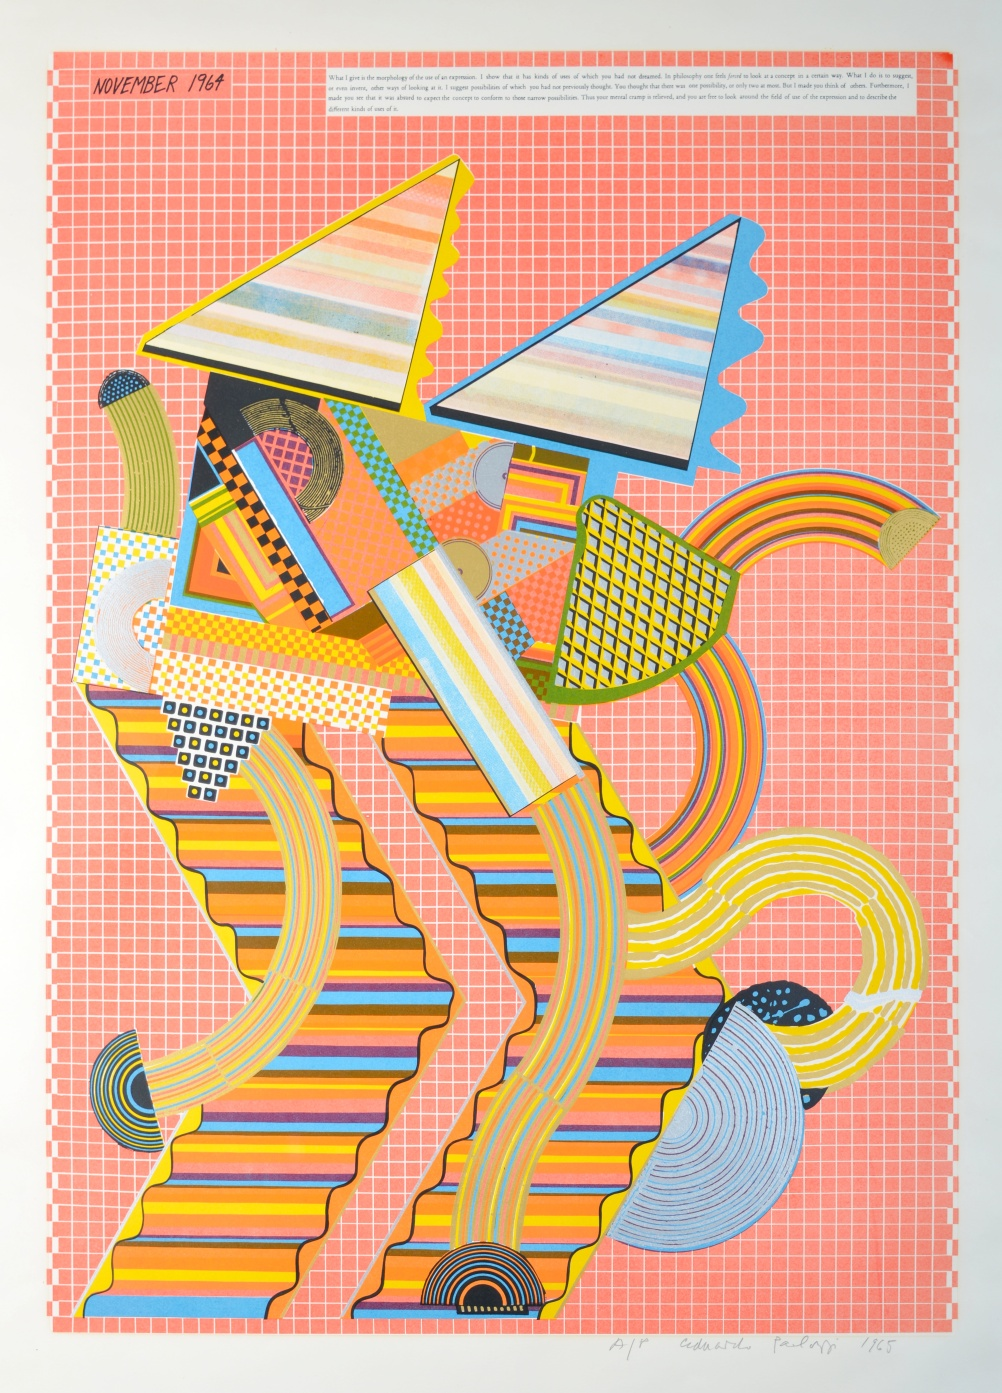 Eduardo Paolozzi, Wittgenstein in New York from 'As is When', 1965, Screenprint on paper, Pallant House Gallery © The Trustees of the Eduardo Paolozzi Foundation